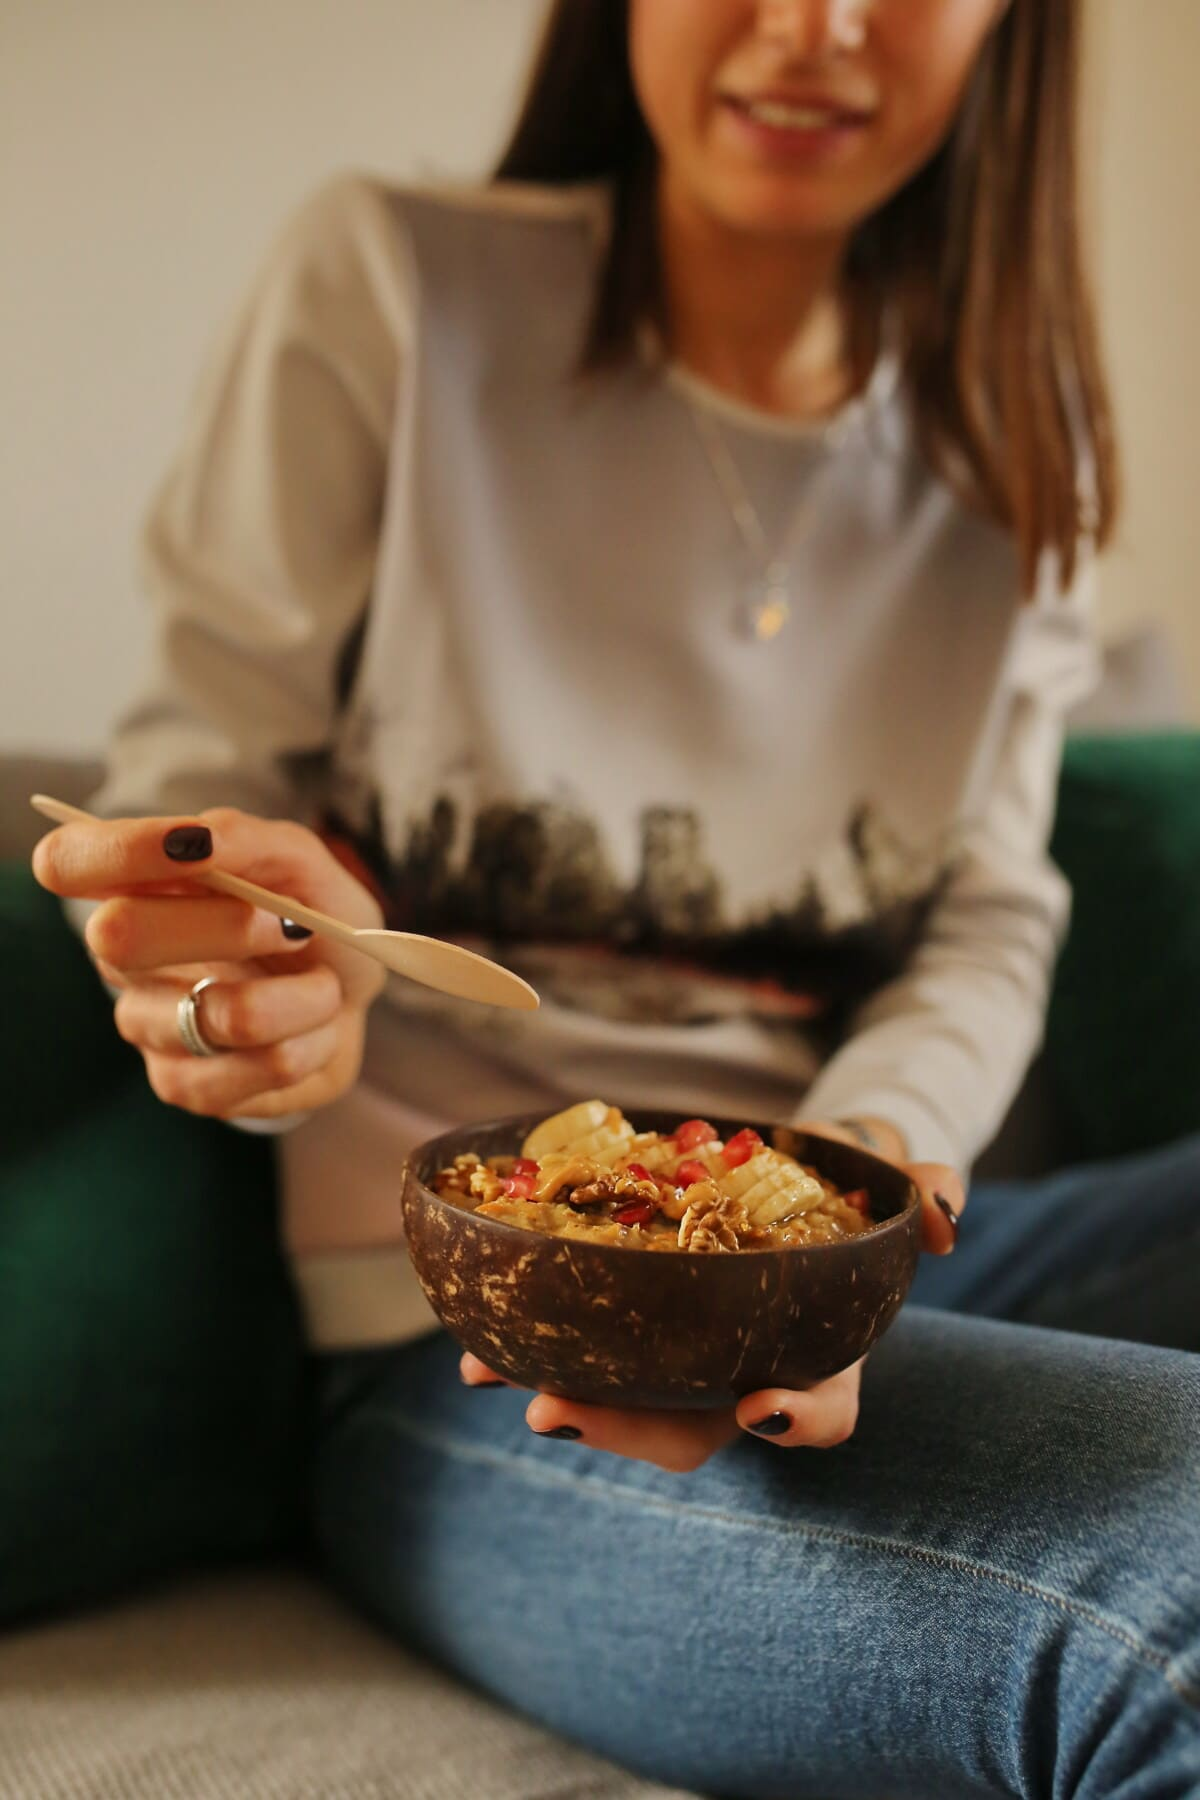 cereal, breakfast, young woman, woman, indoors, people, food, blur, kitchenware, cooking